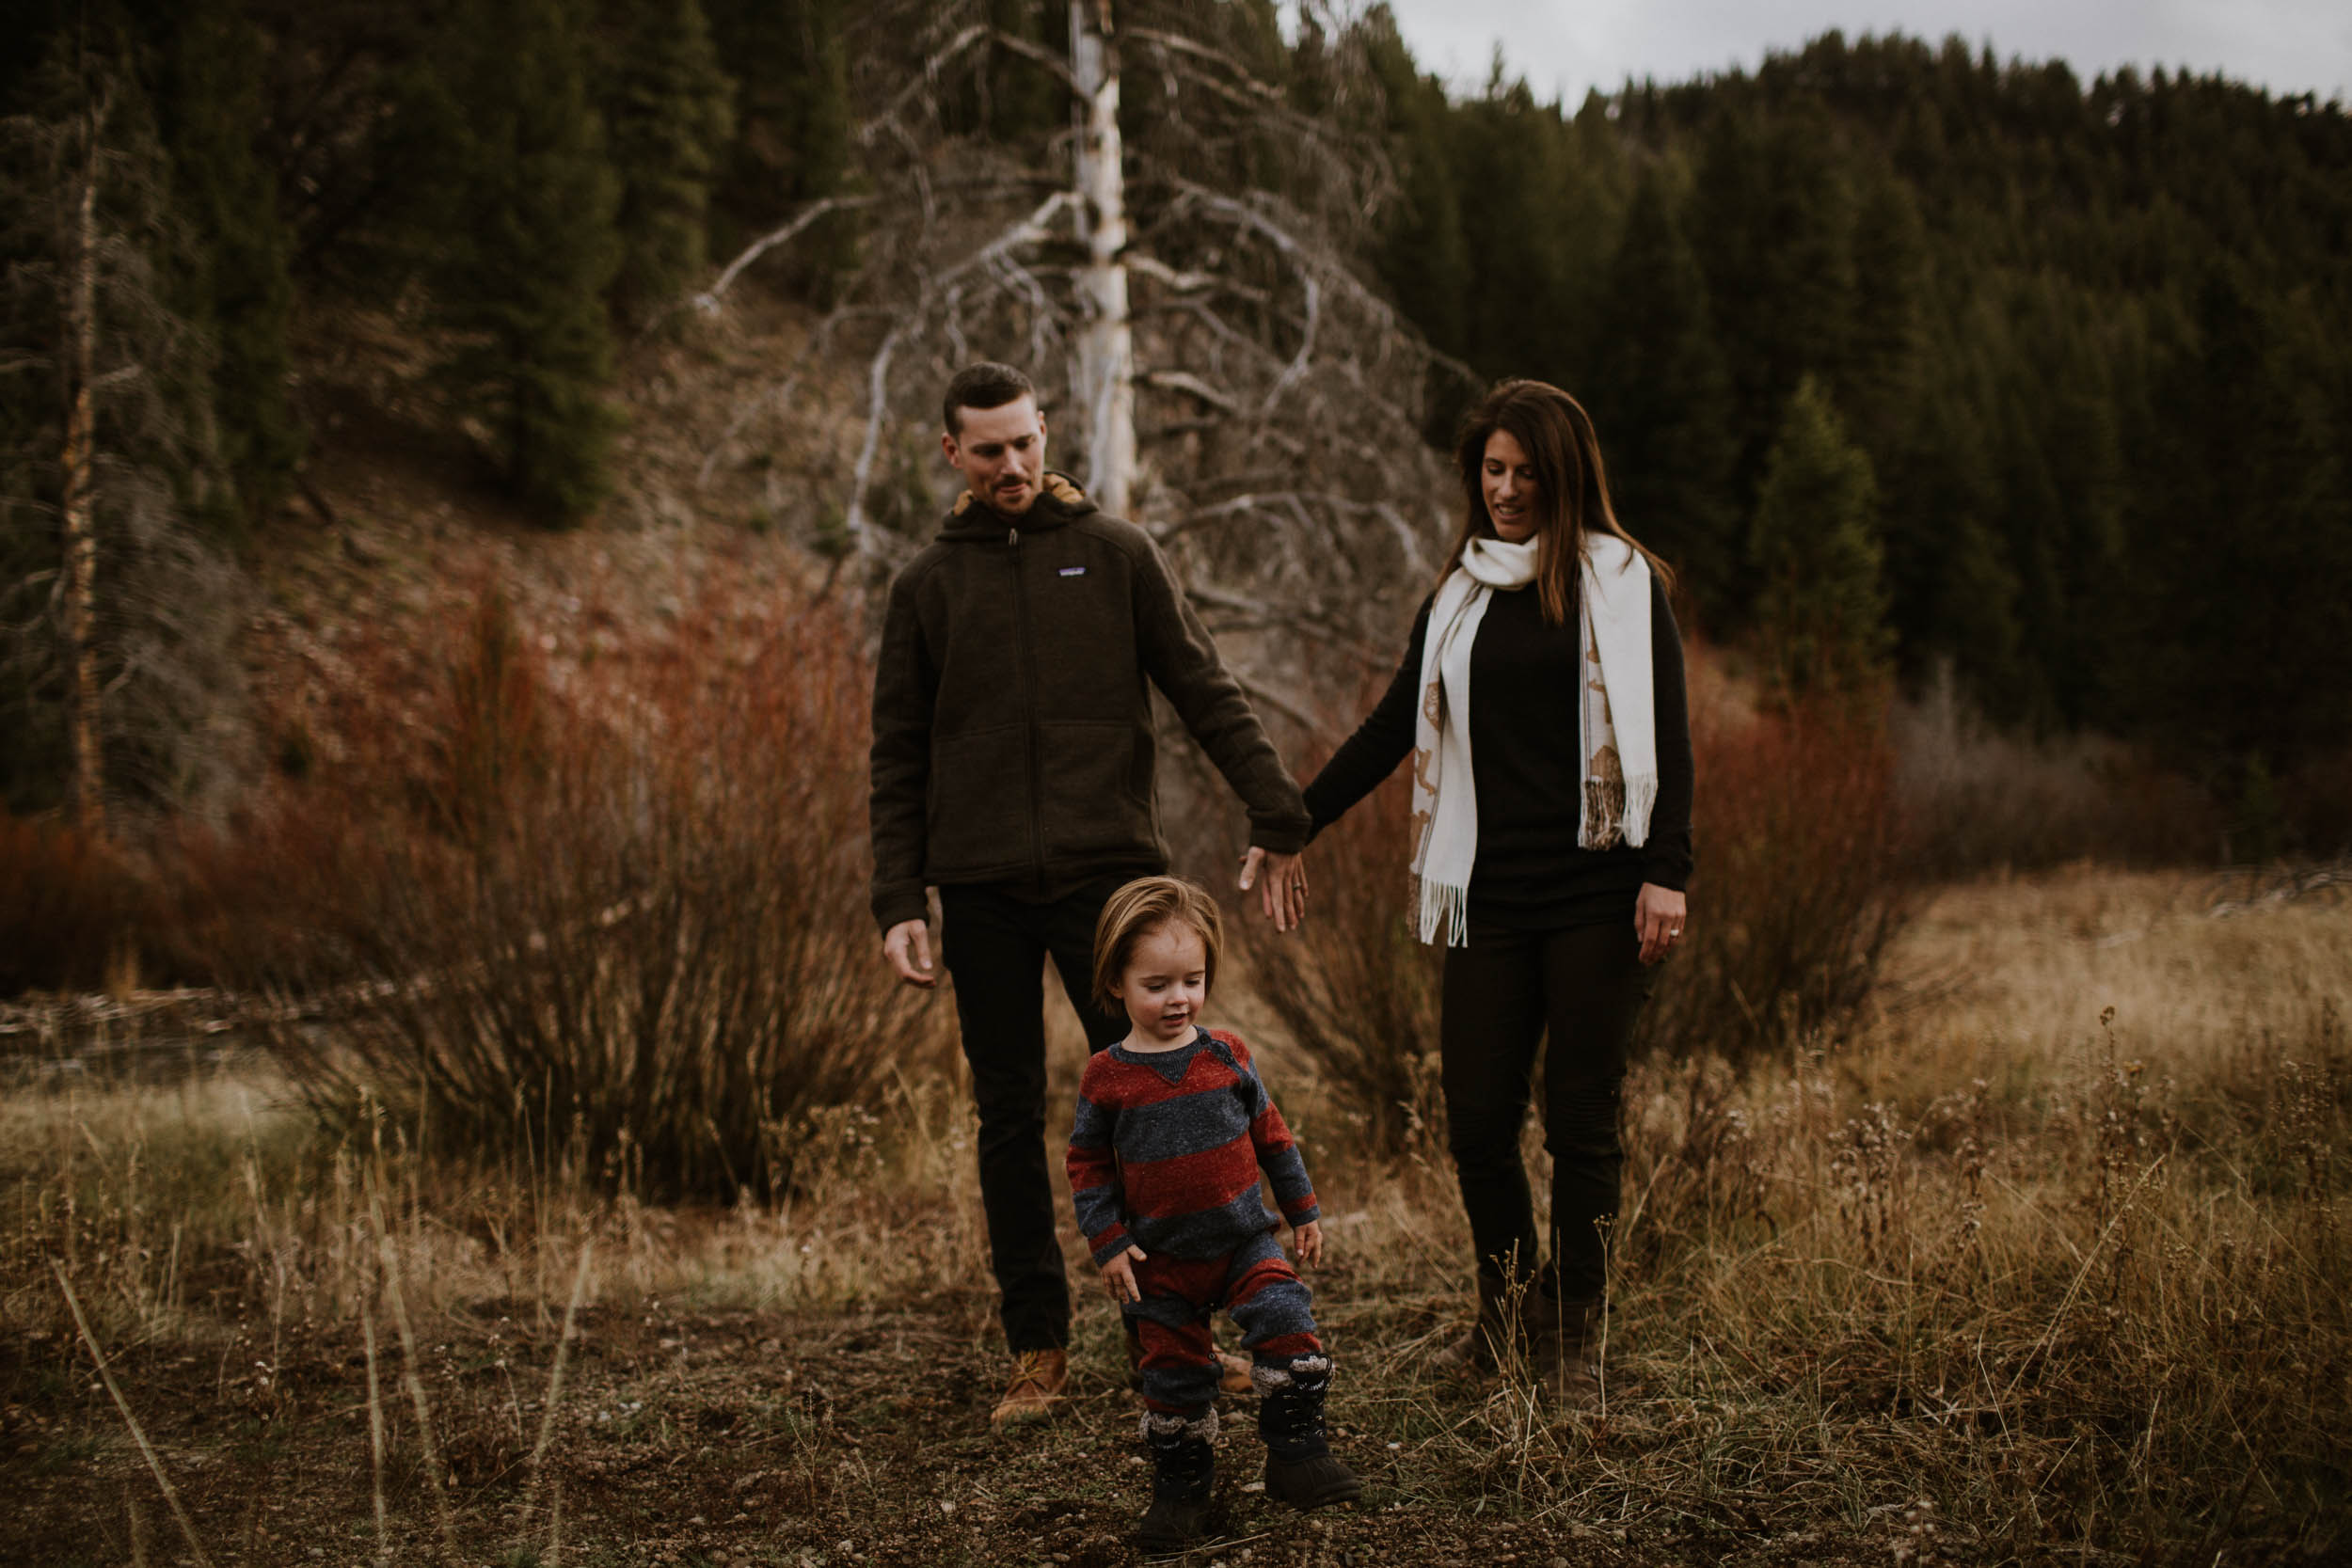 sunvalleyfamily_christinemariephoto-33.jpg